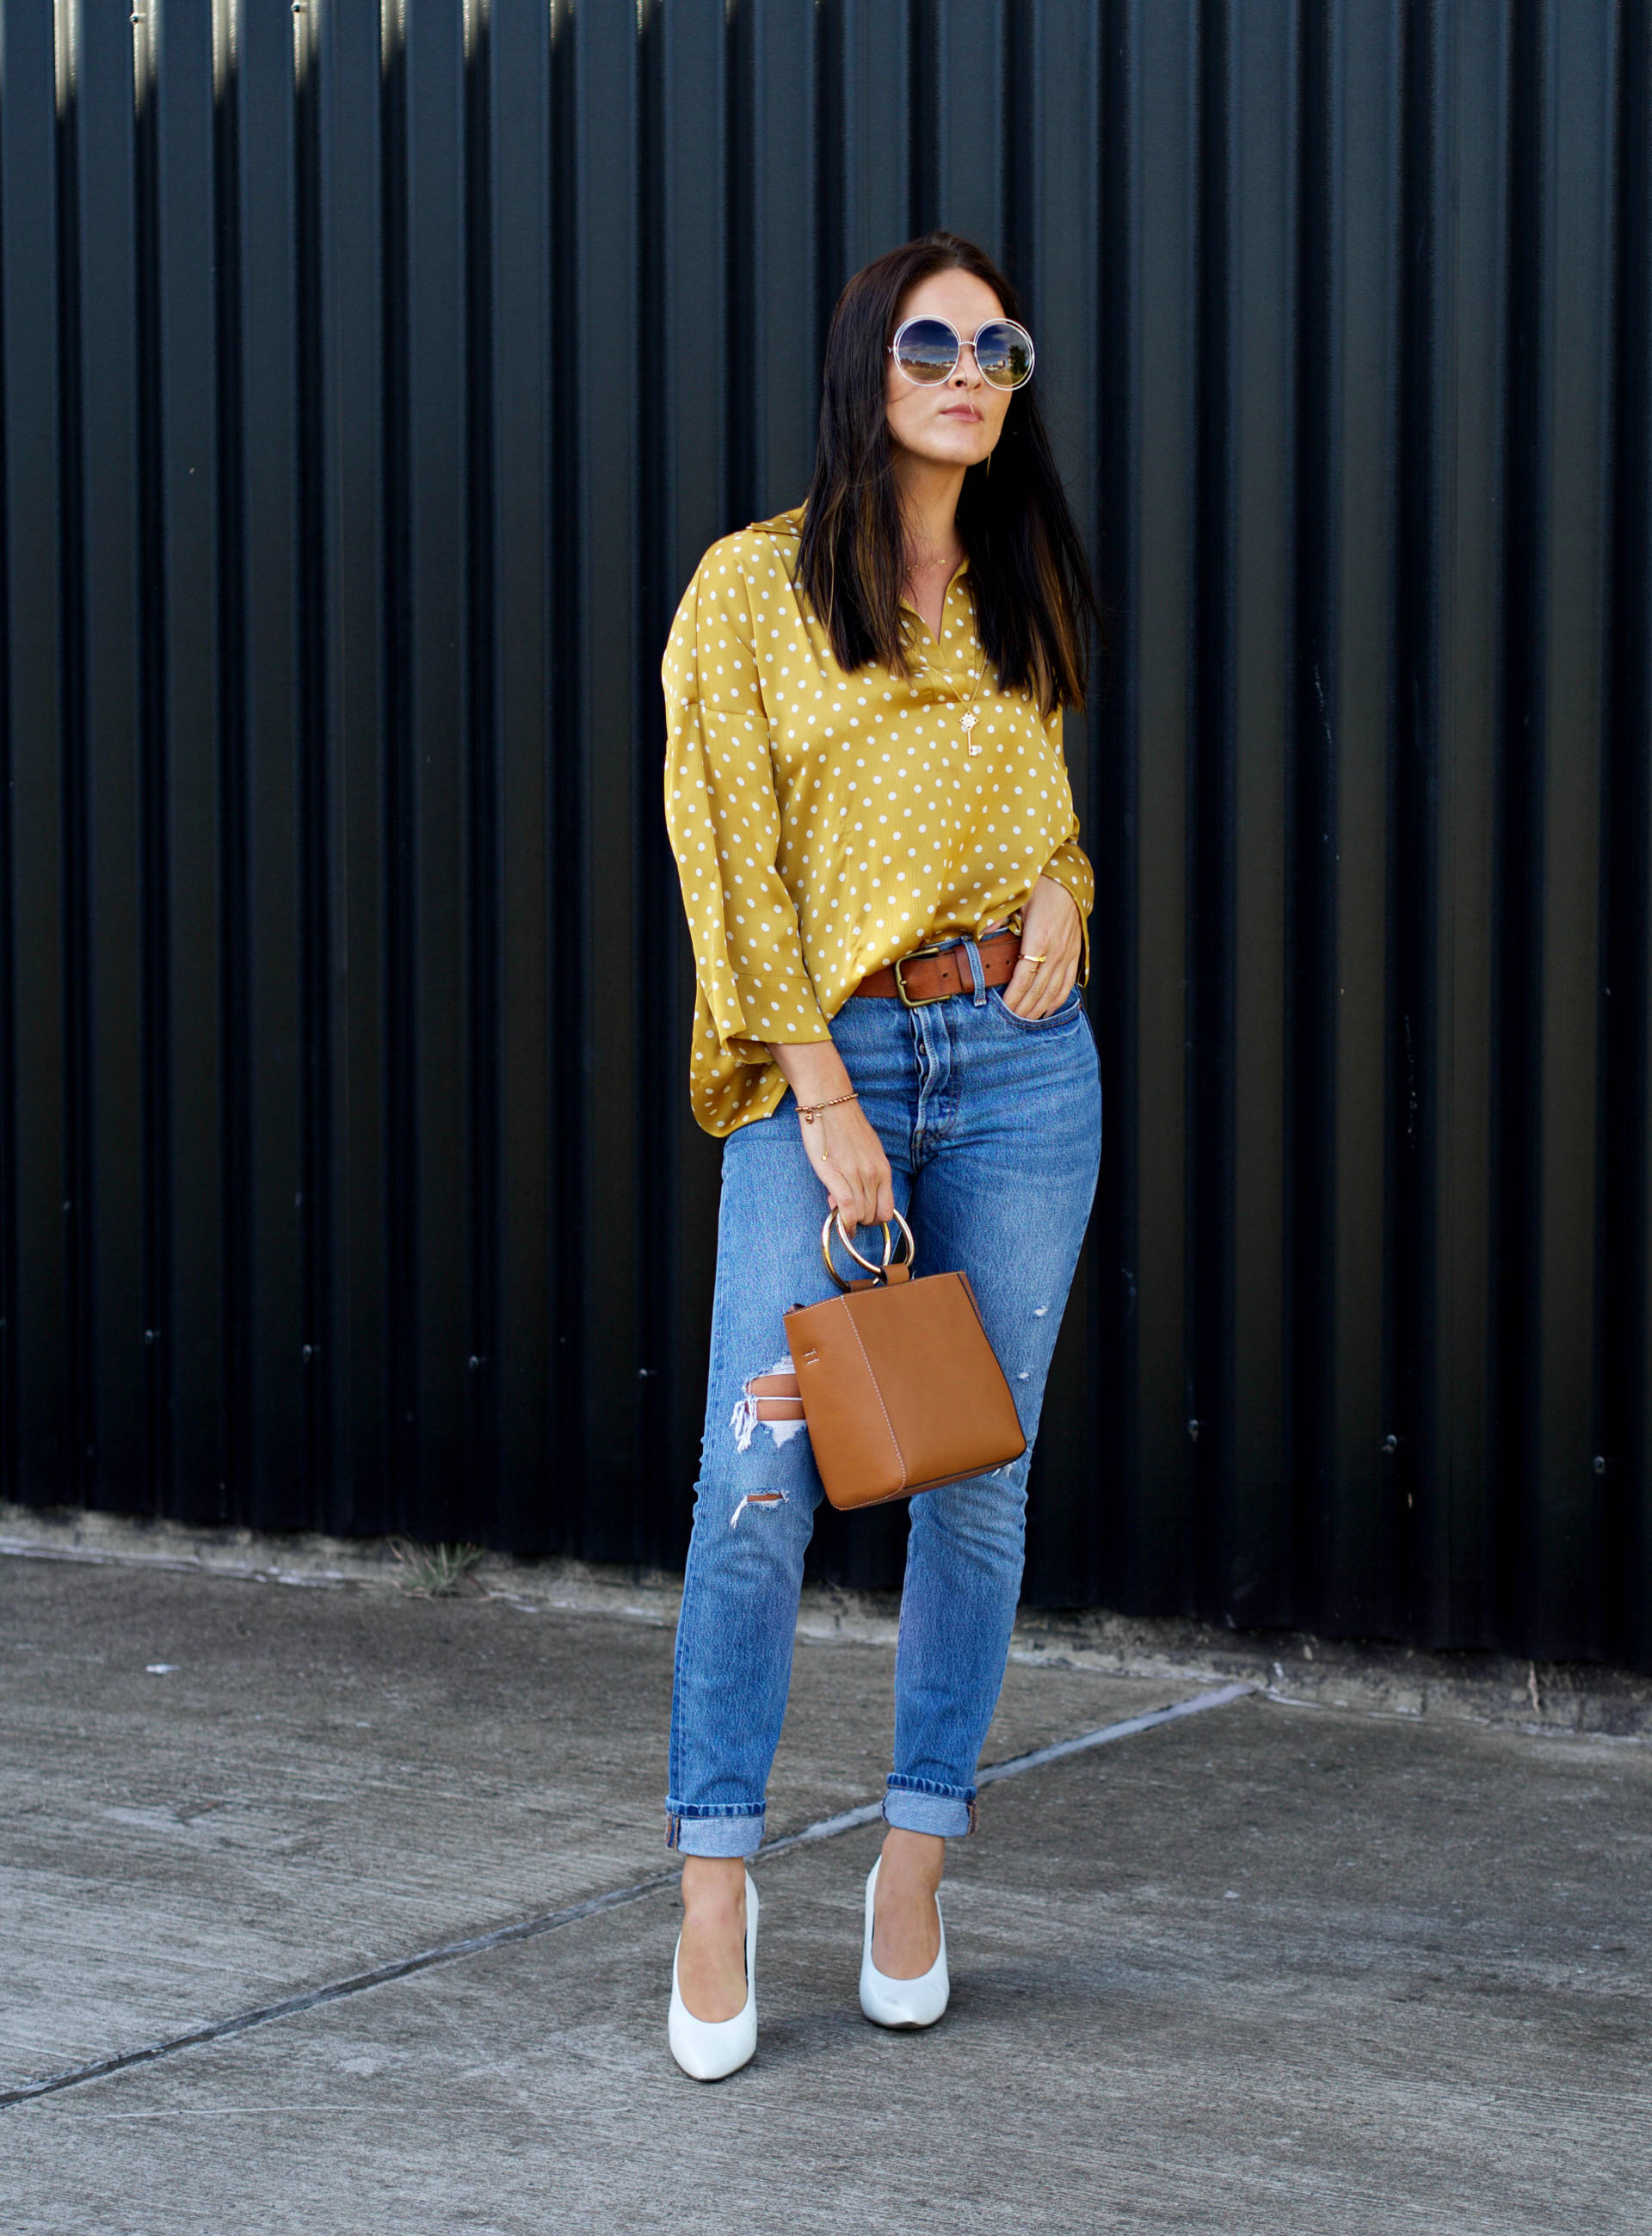 STREET STYLING - POLKA DOT YELLOW SHIRT OVERSIZED WITH LEVIS JEANS AND WHITE HEELS - FASHION BLOGGER LAFOTKA